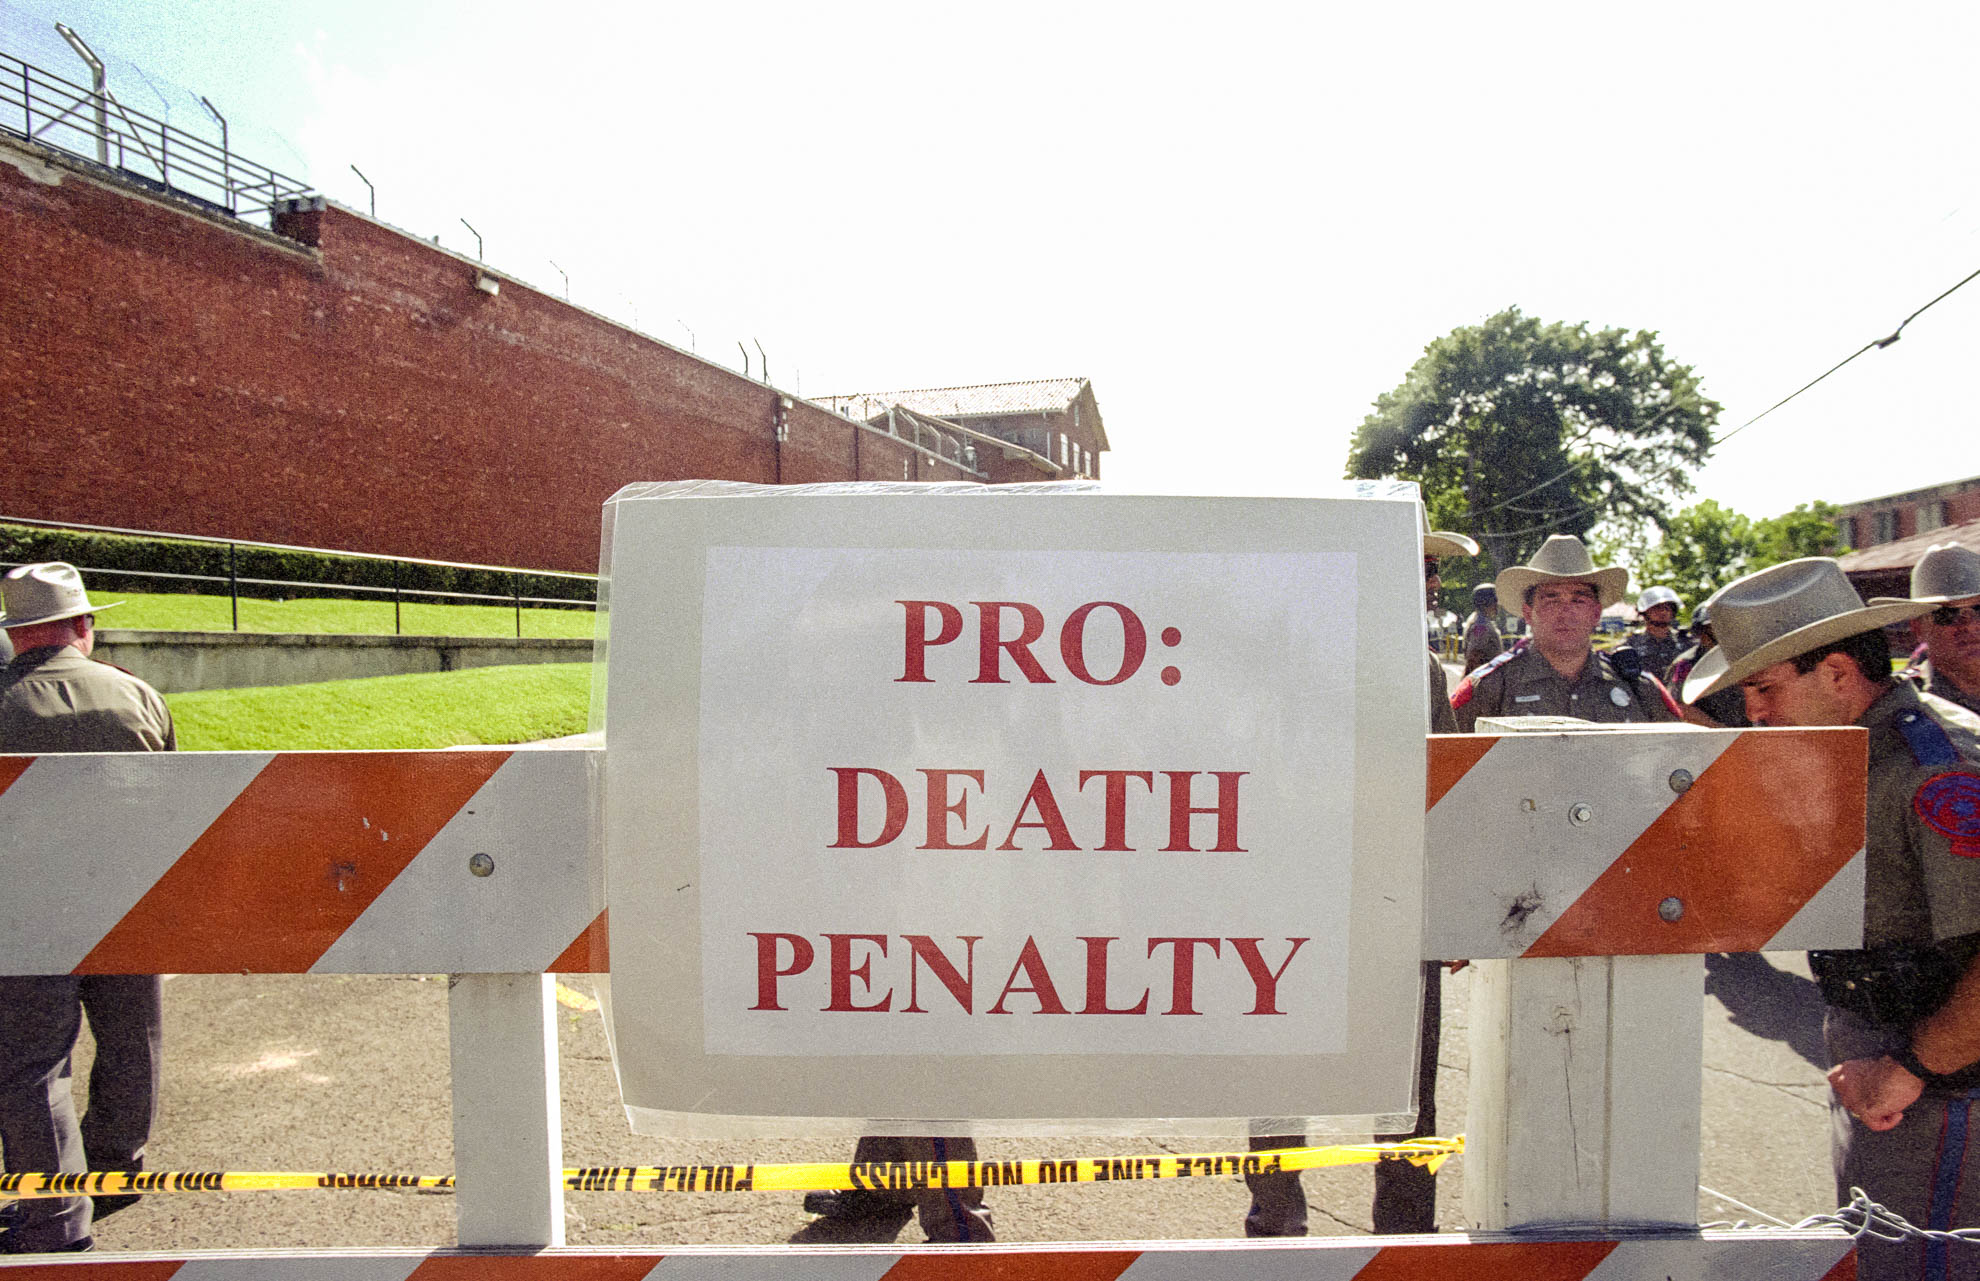 death penalty, photography, photos, execution, prison, documentary, texas, huntsville, protest, support, pro, gary graham, walls unit